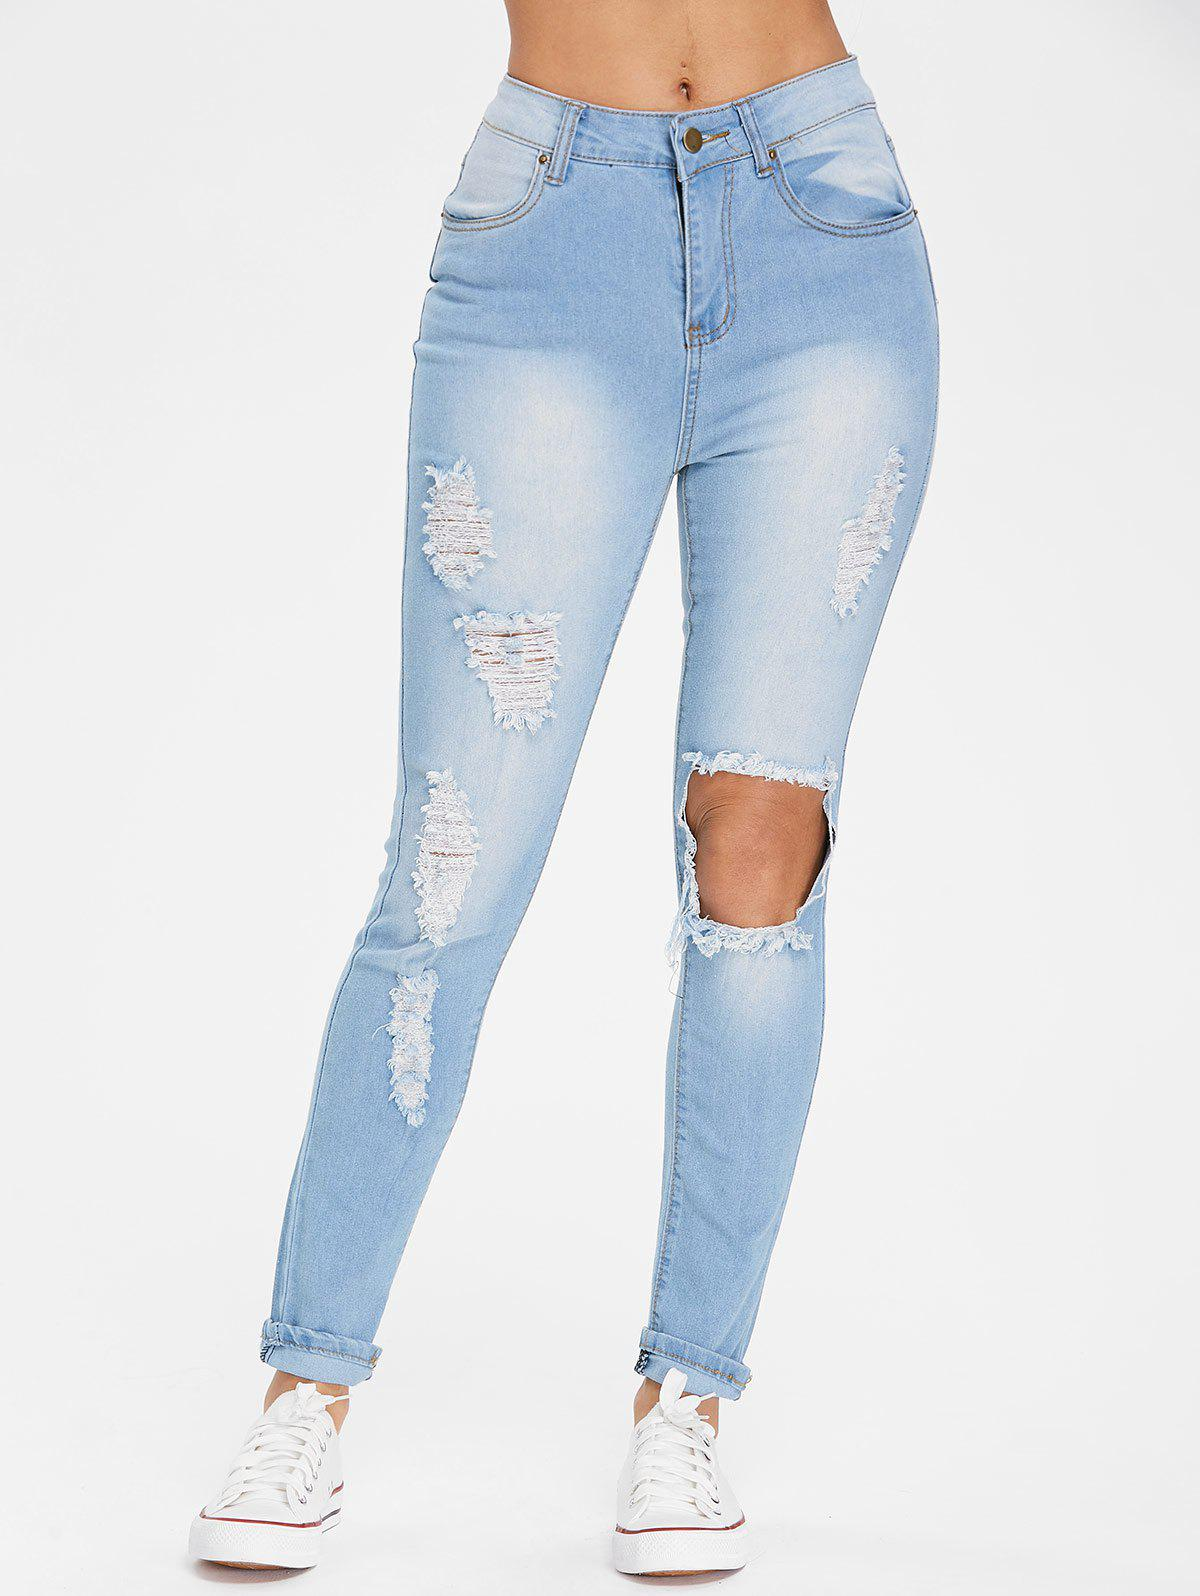 High Waist Destroyed Jeans - LIGHT SKY BLUE S